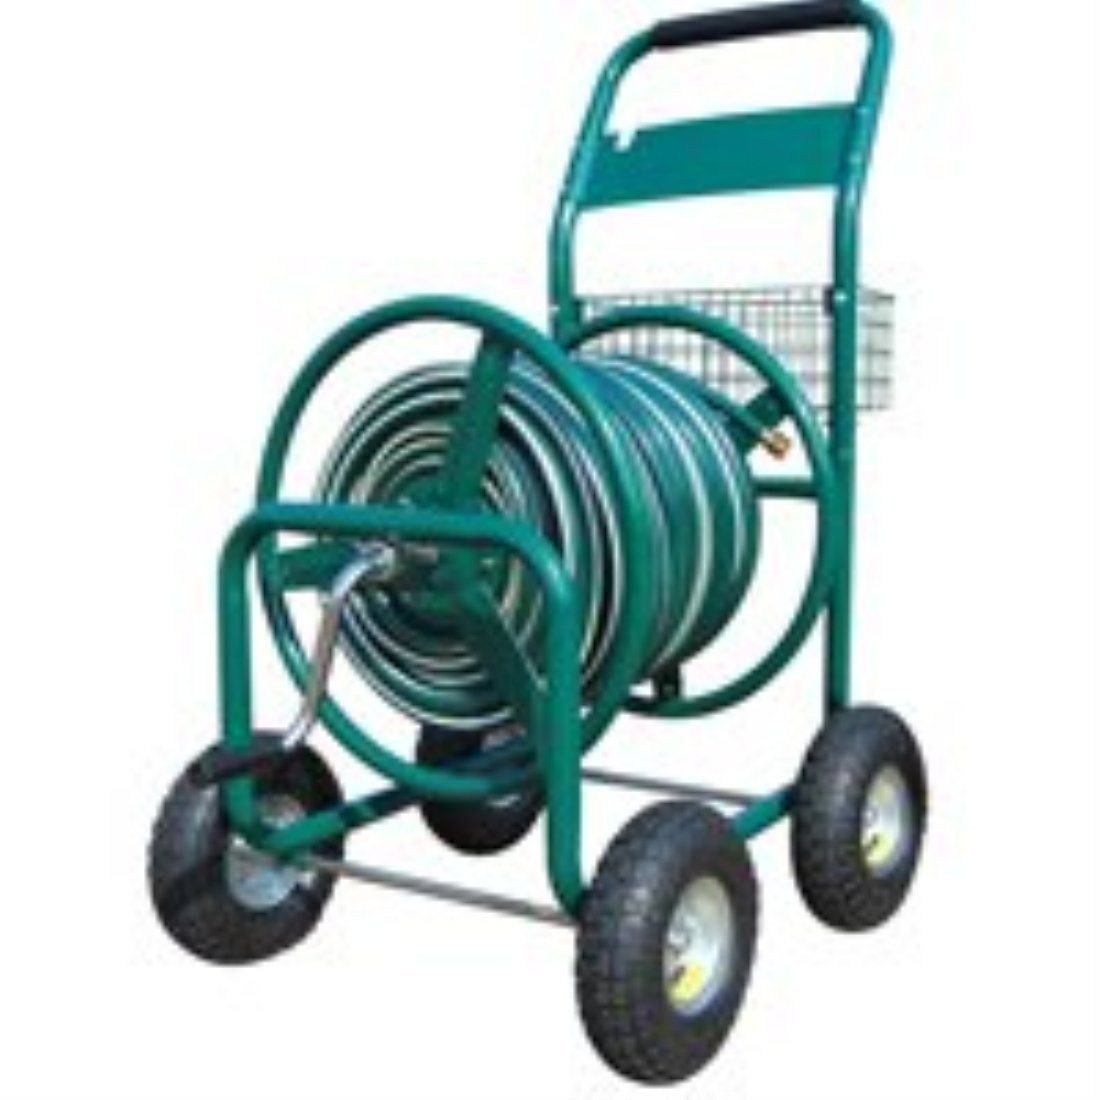 400 FT GARDEN HOSE REEL CART *** Quickly View This Special Product, Click